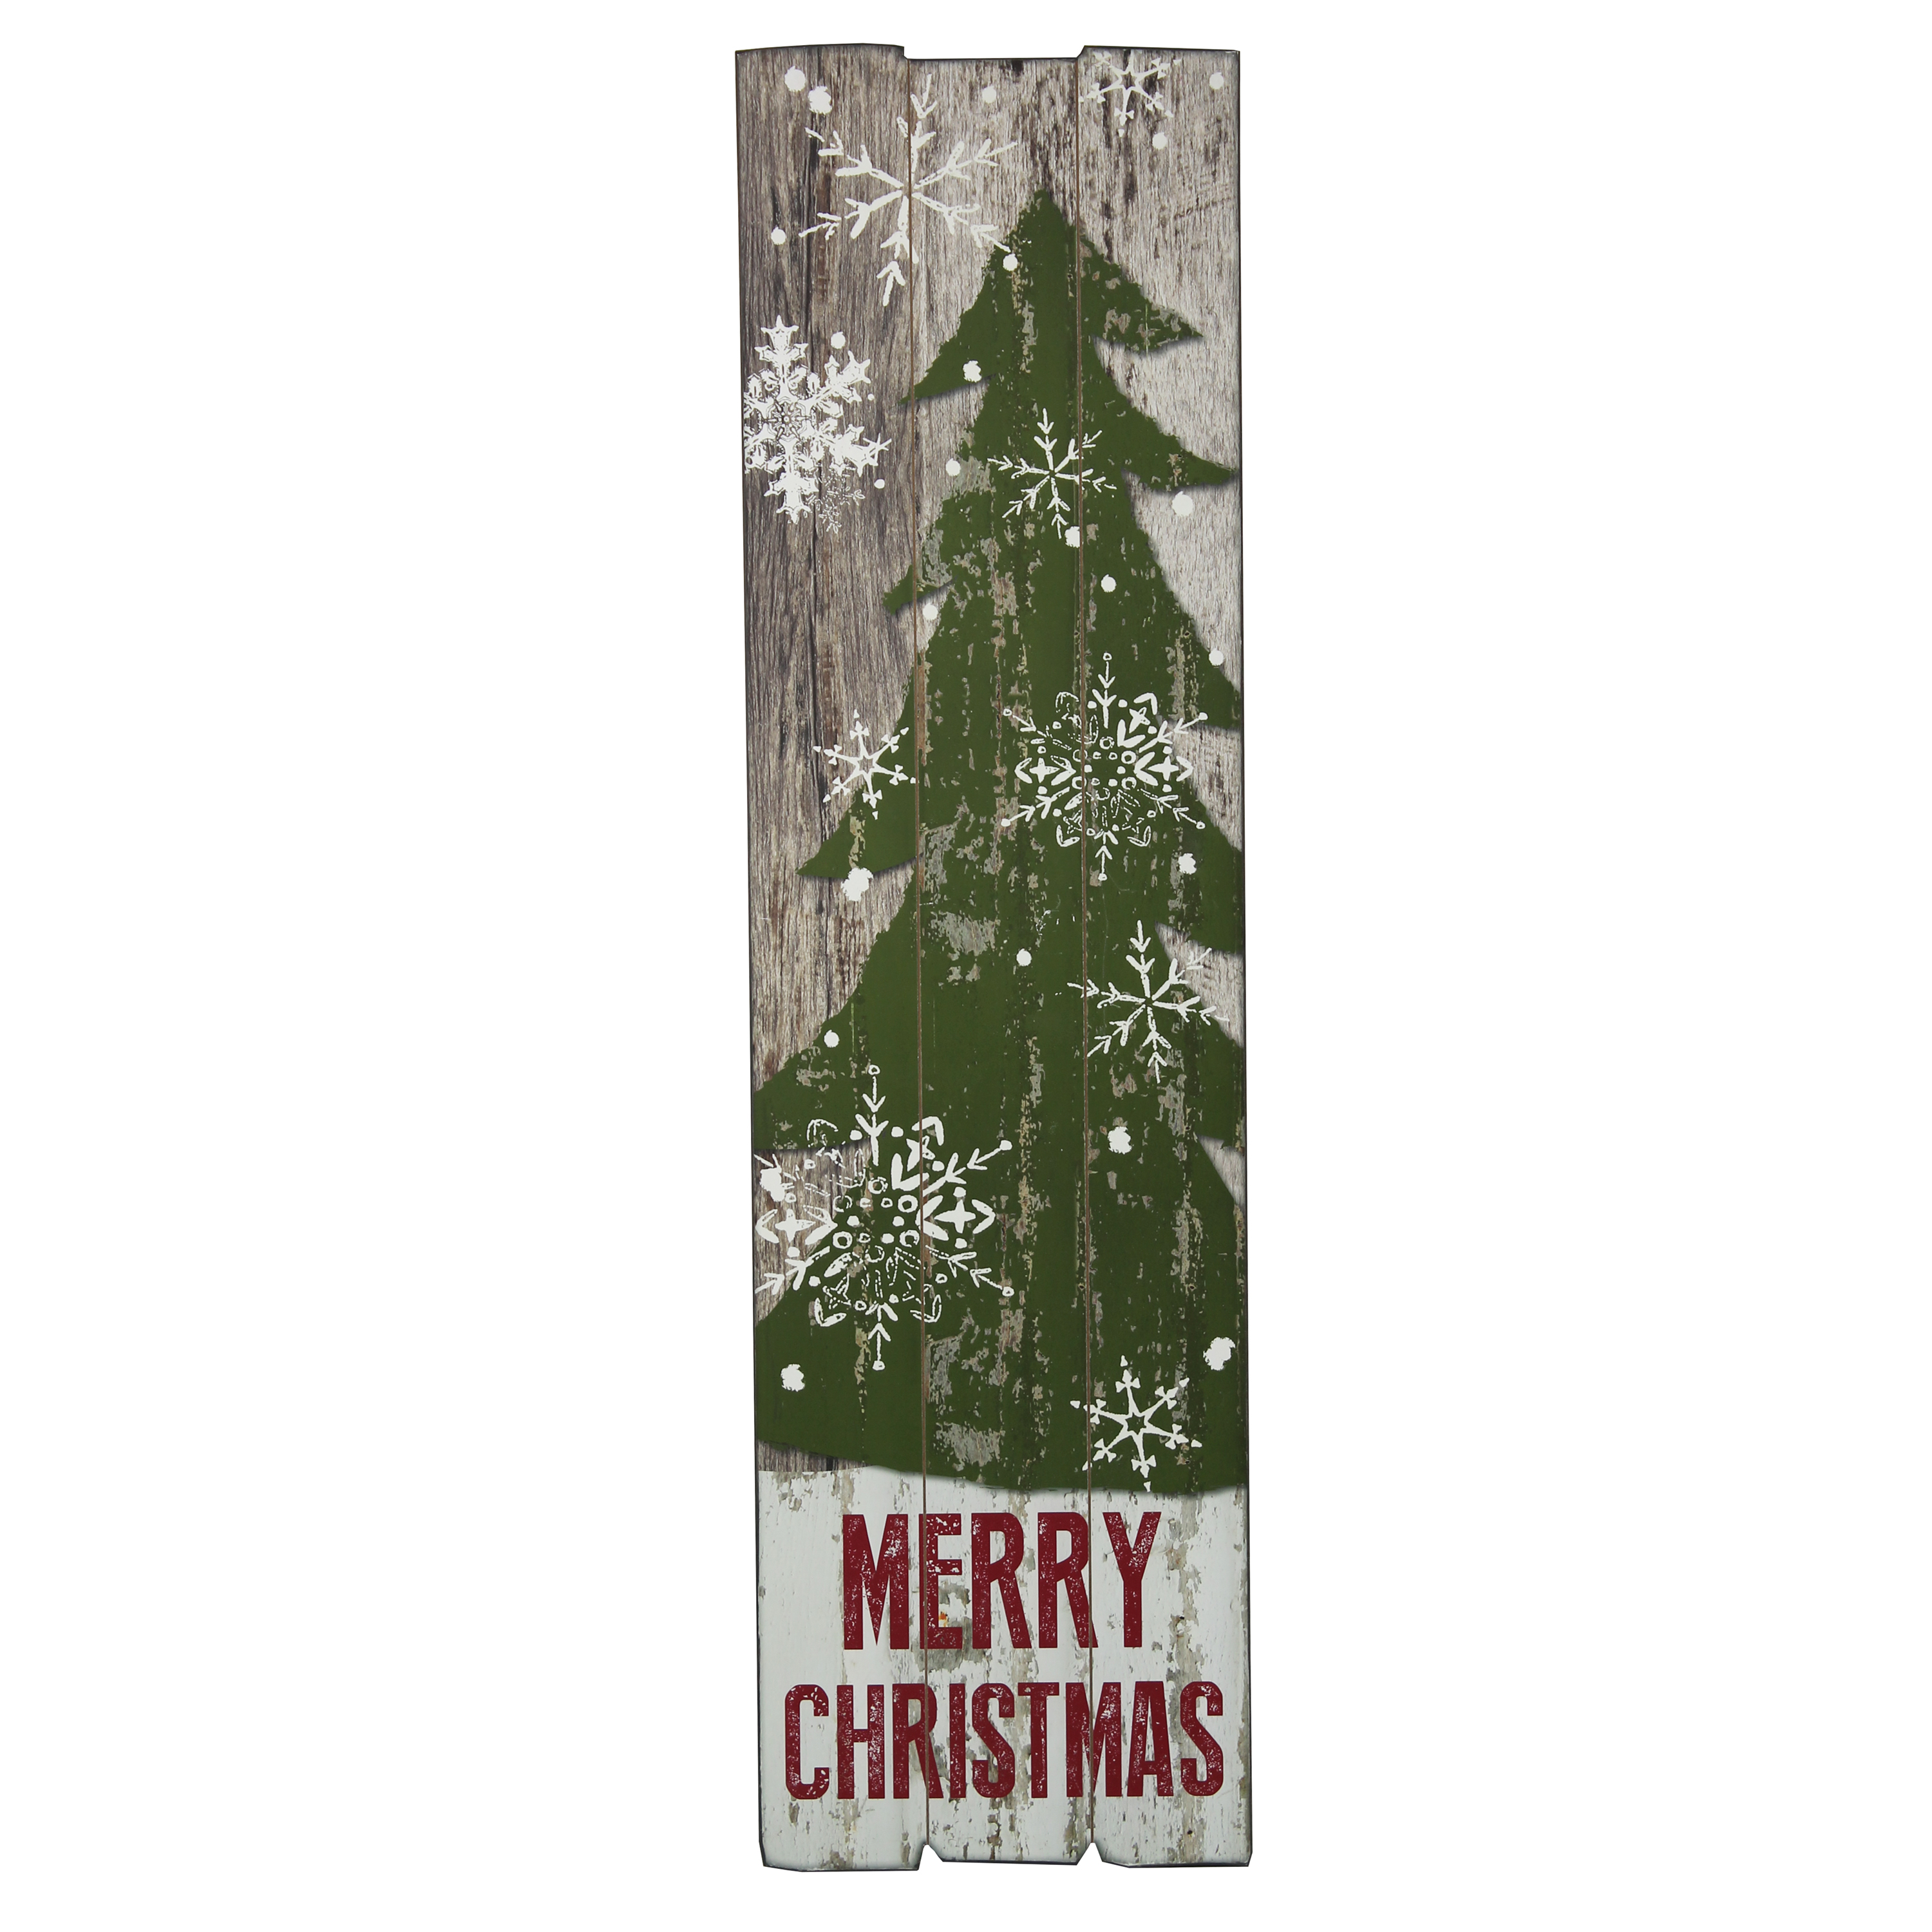 HOLIDAY TIME MERRY CHRISTMAS DISTRESSED WOOD SIGN, 12 X 44 INCH